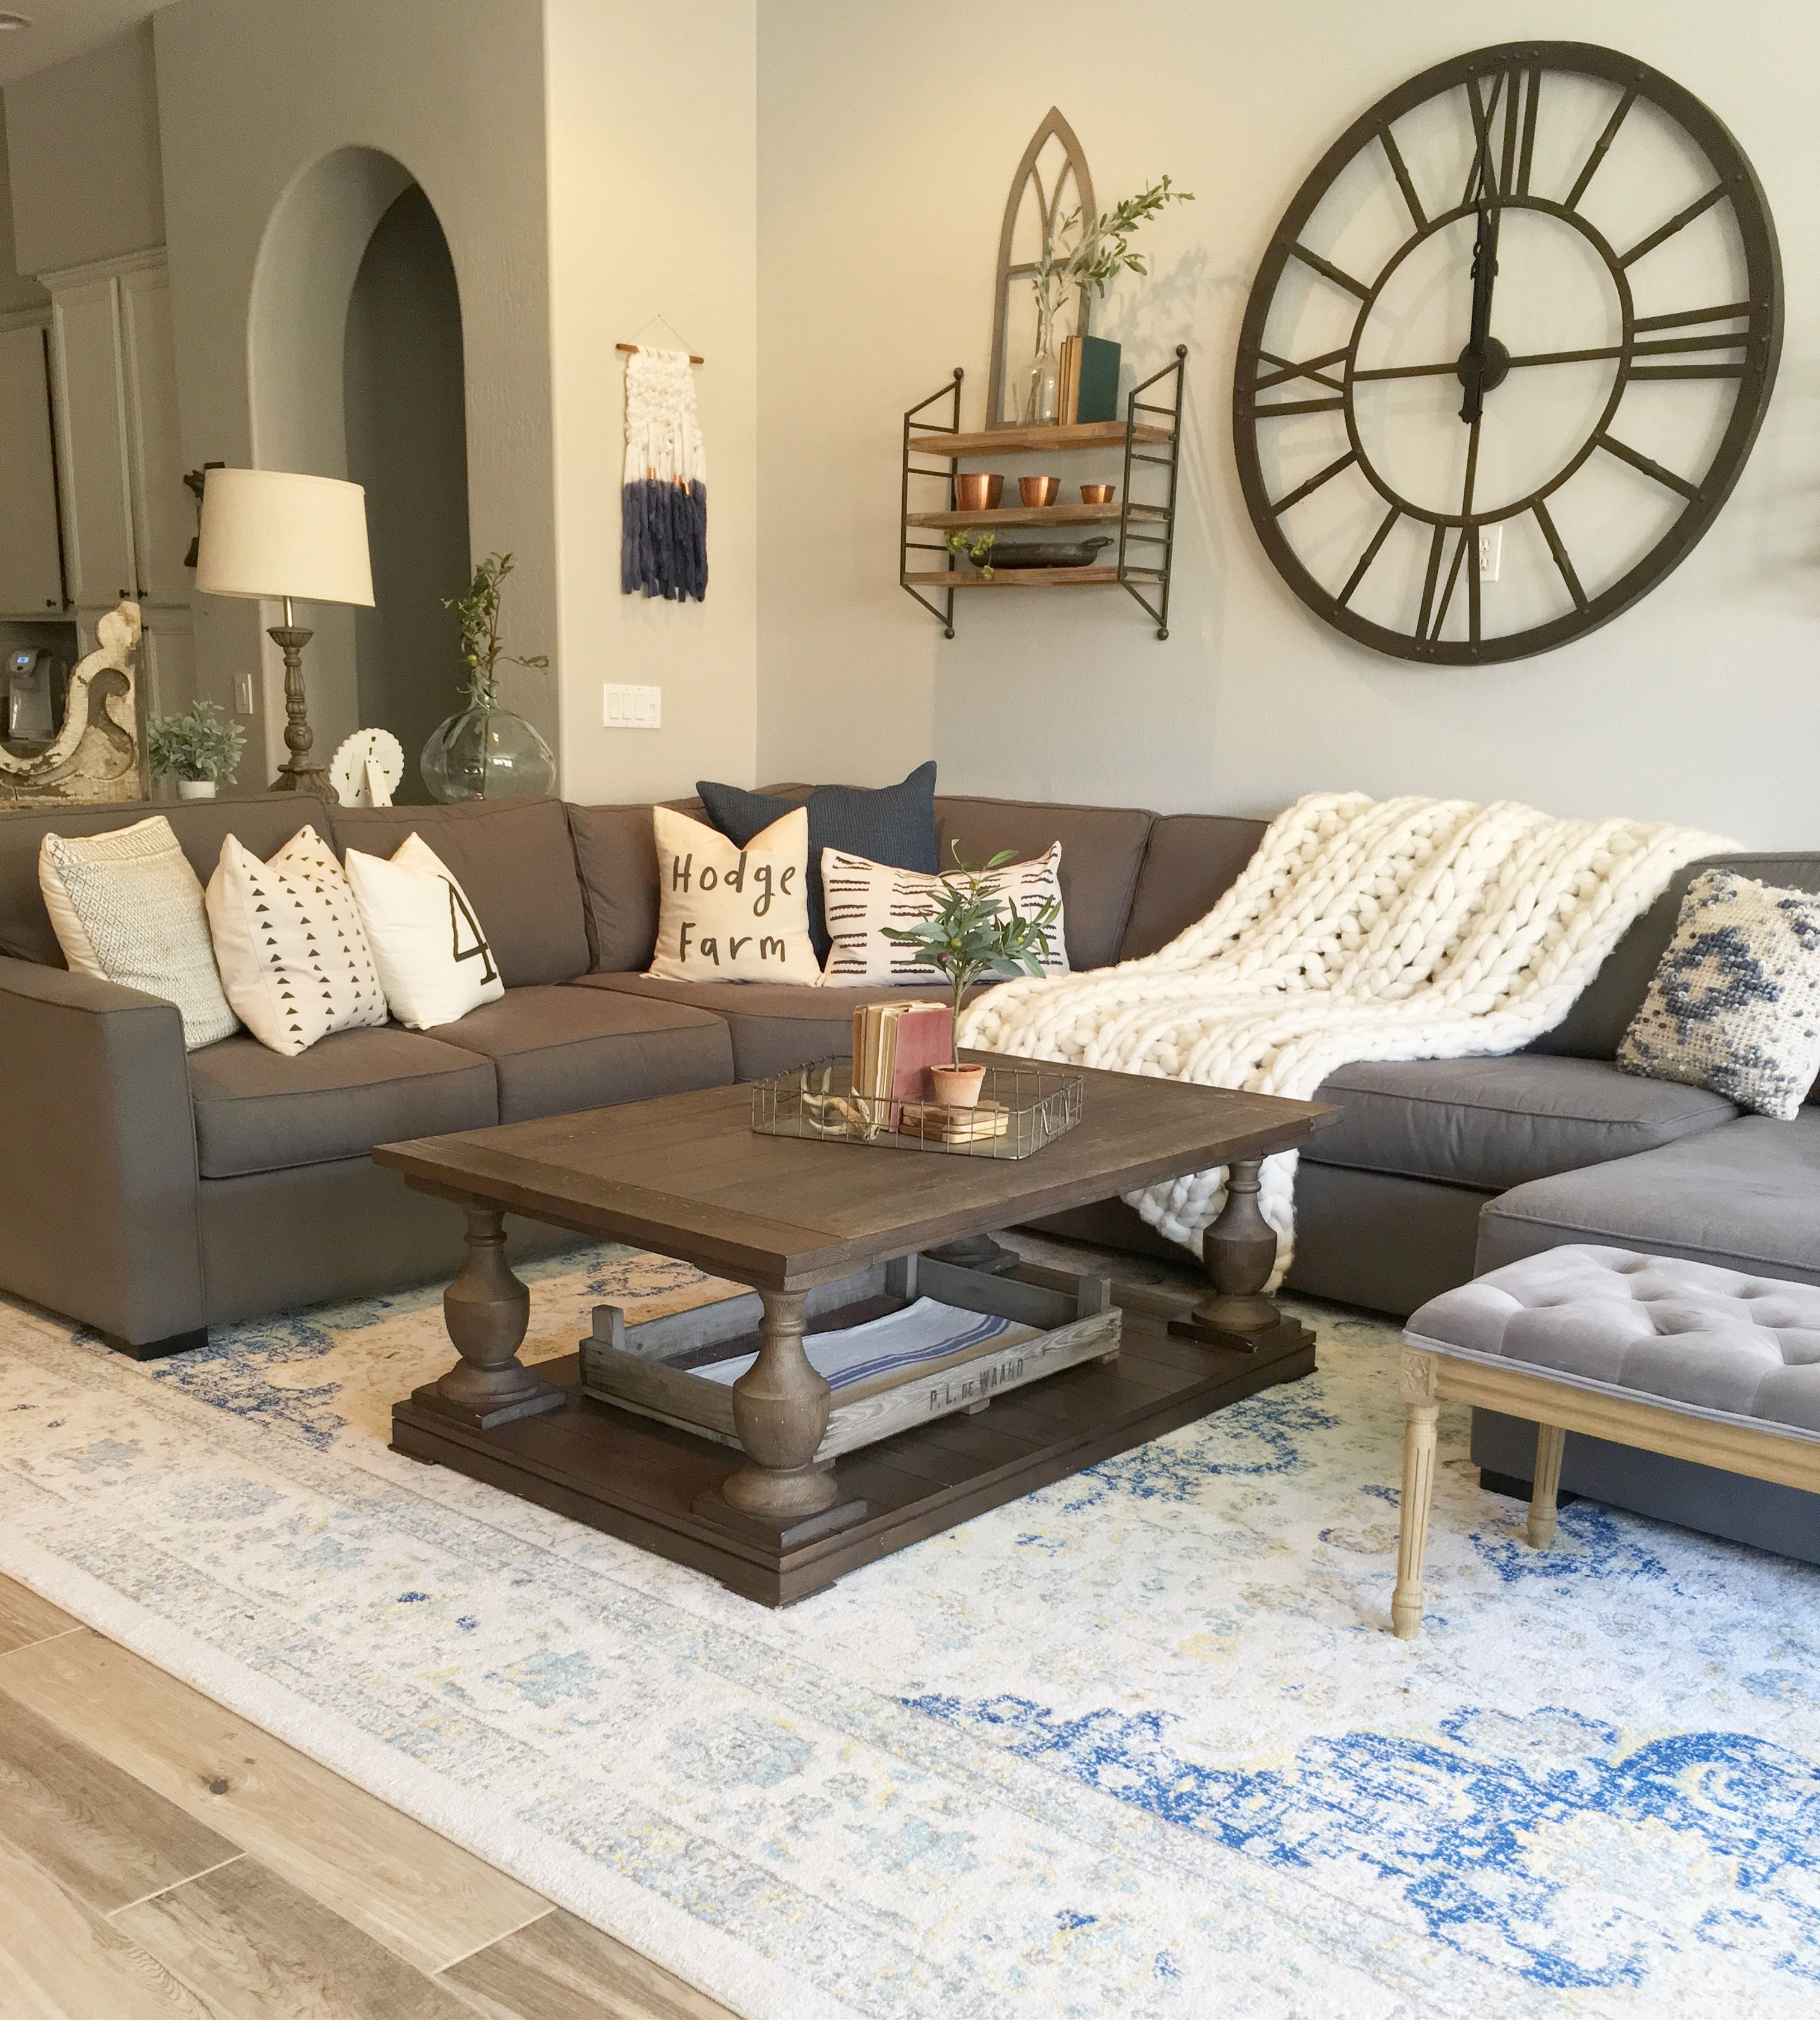 A Large Living Room To Socialise In: Modern Farmhouse Living Room Decor. Large Wall Clock